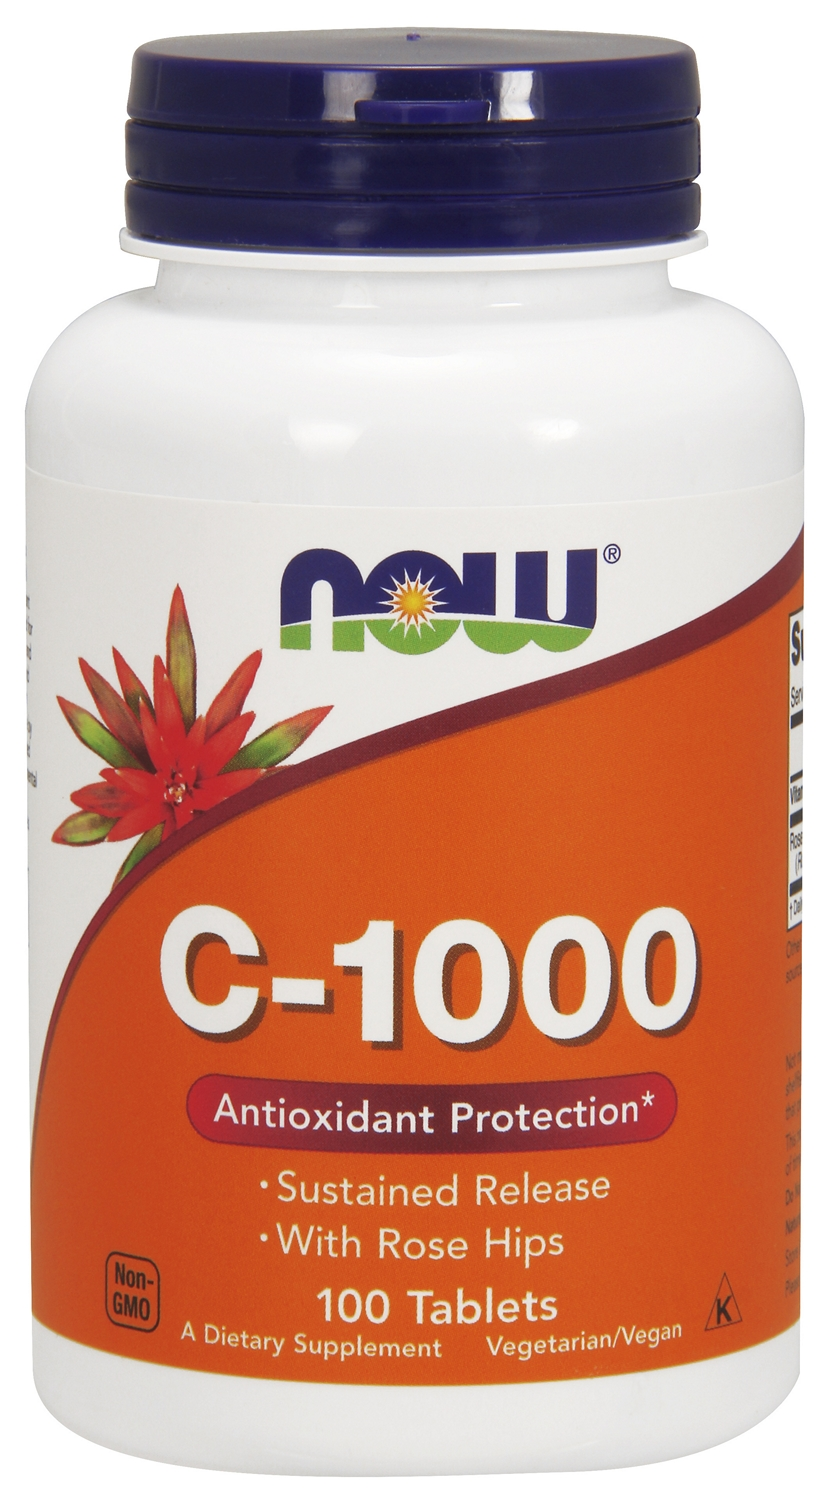 C-1000 Sustained Release with Rose Hips 100 tabs by NOW Foods